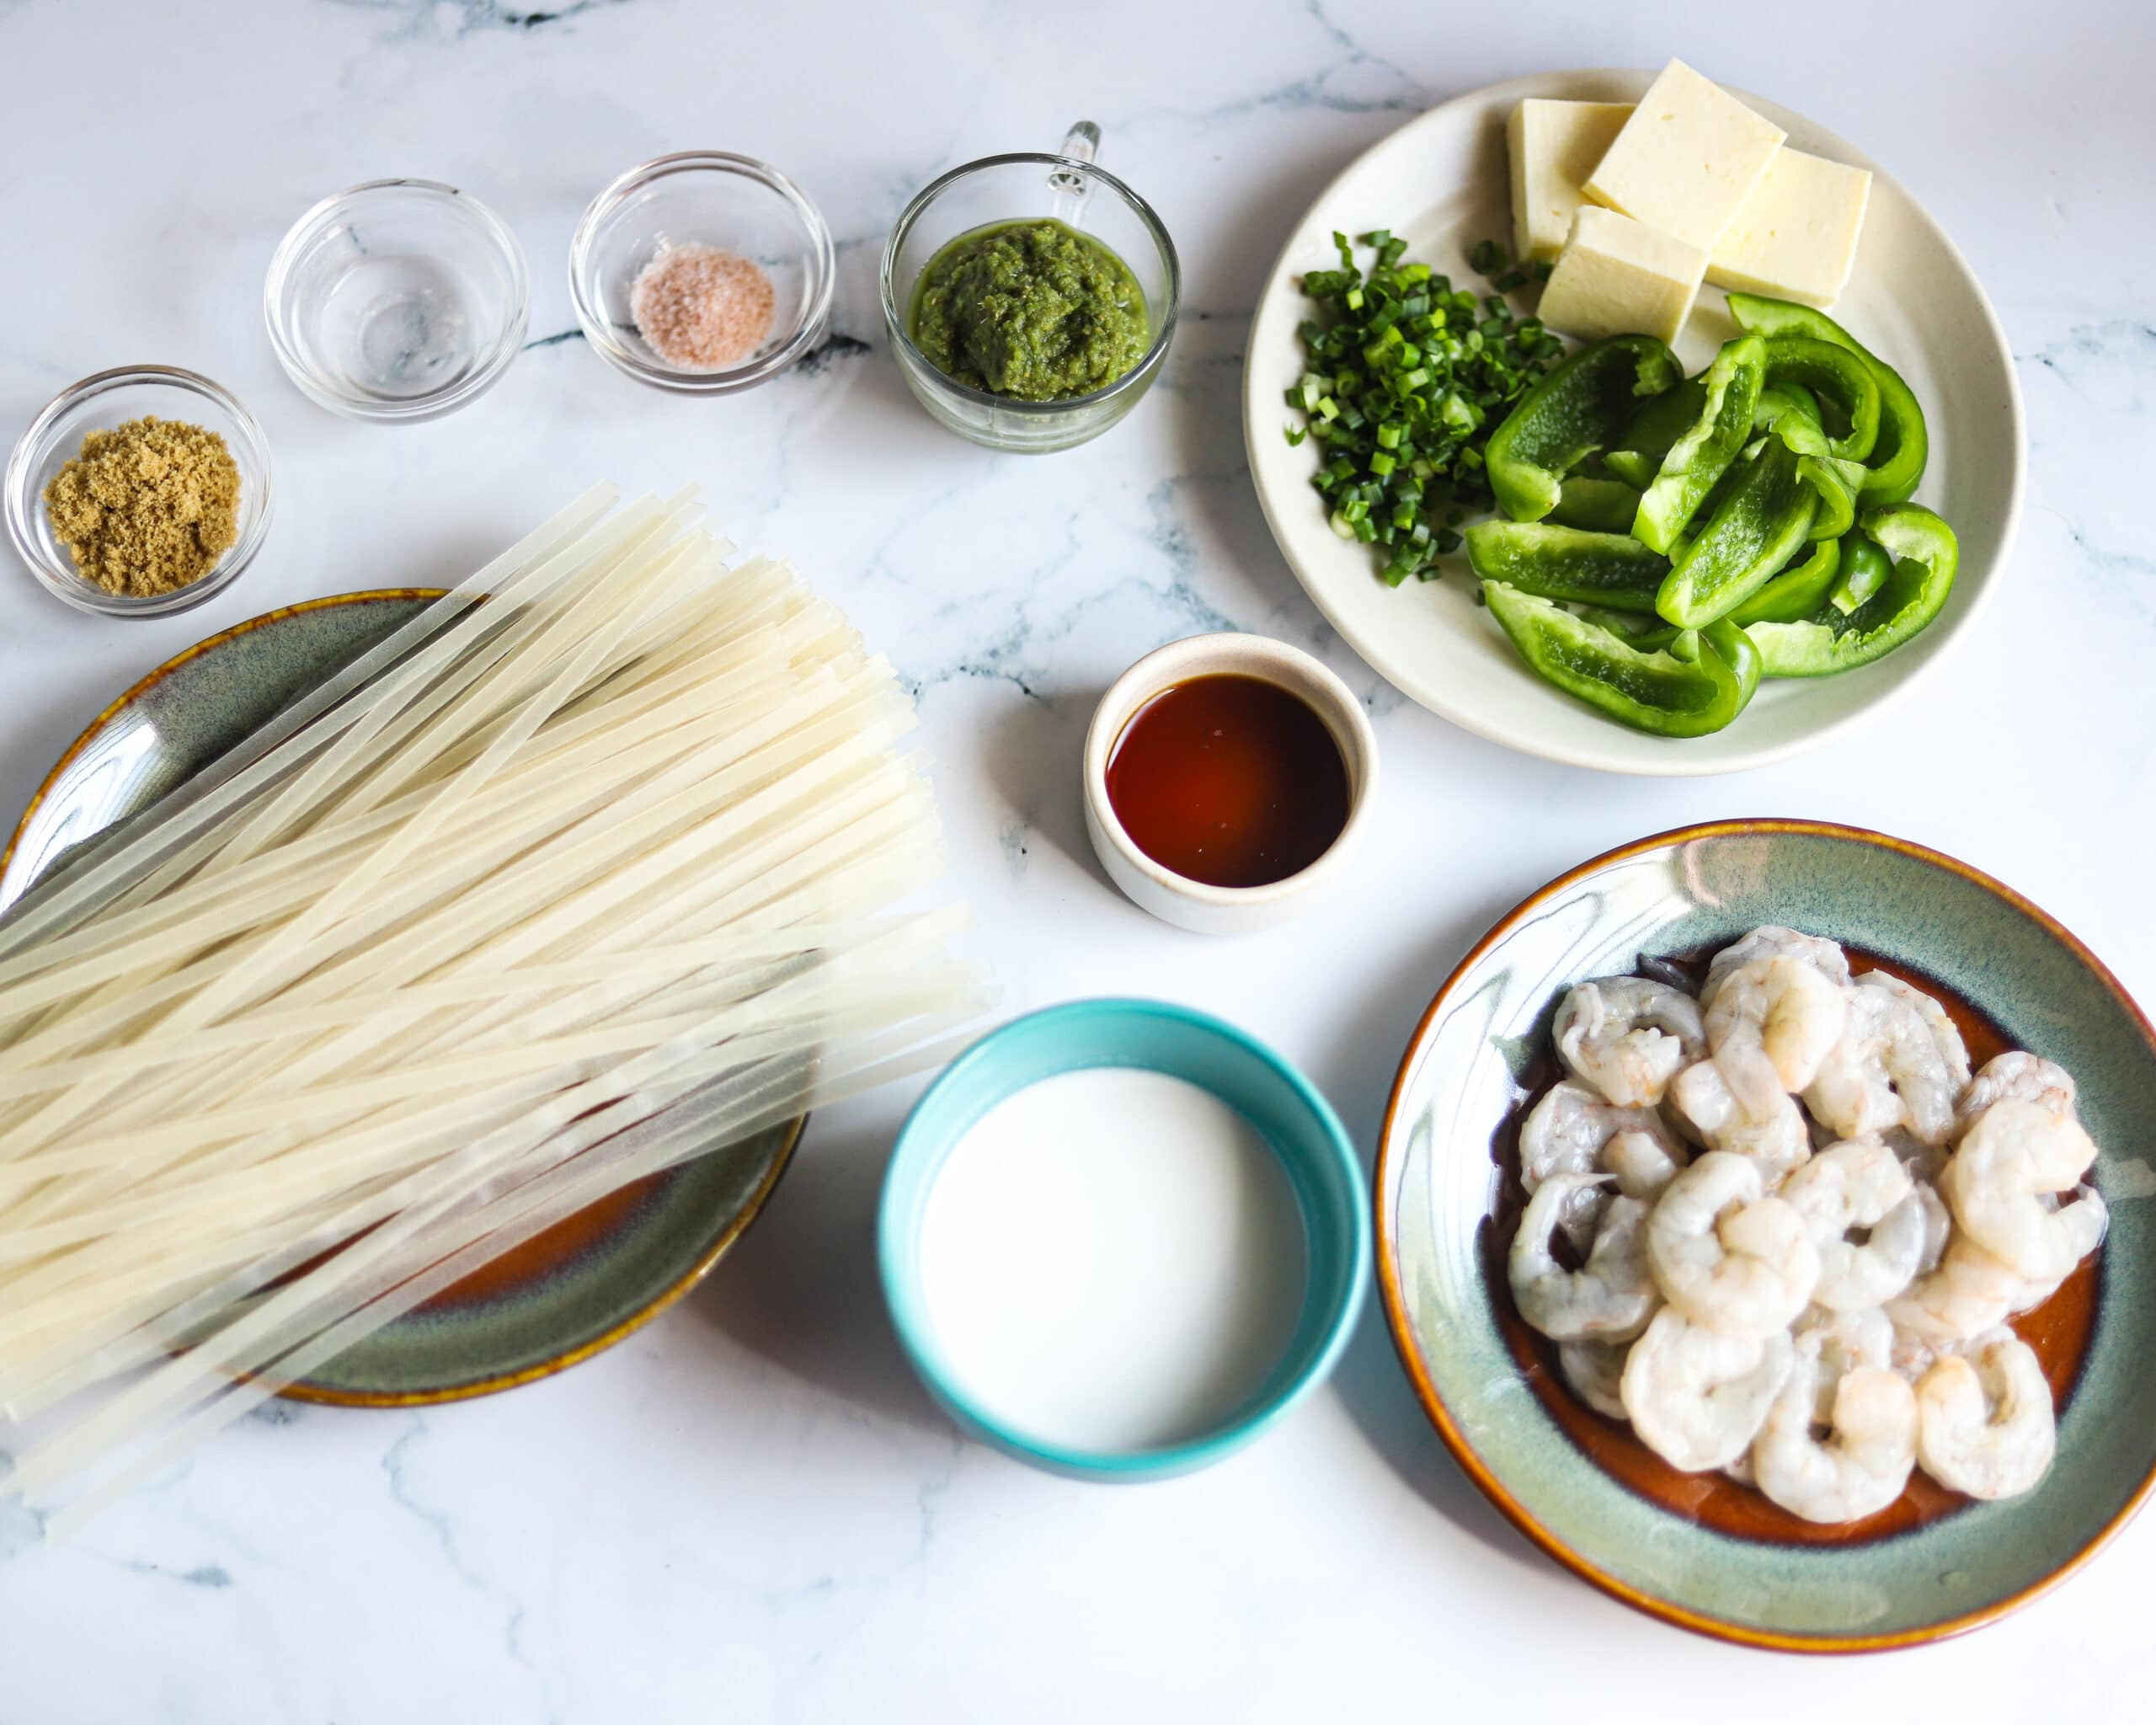 Thai Green Curry Noodles Ingredients. These Thai Green Curry Noodles boast a flavorful broth made with coconut milk and fresh ingredients. Fill your bowl with fresh veggies, shrimp, tofu, and rice noodles for a flavorful easy weeknight dinner recipe.